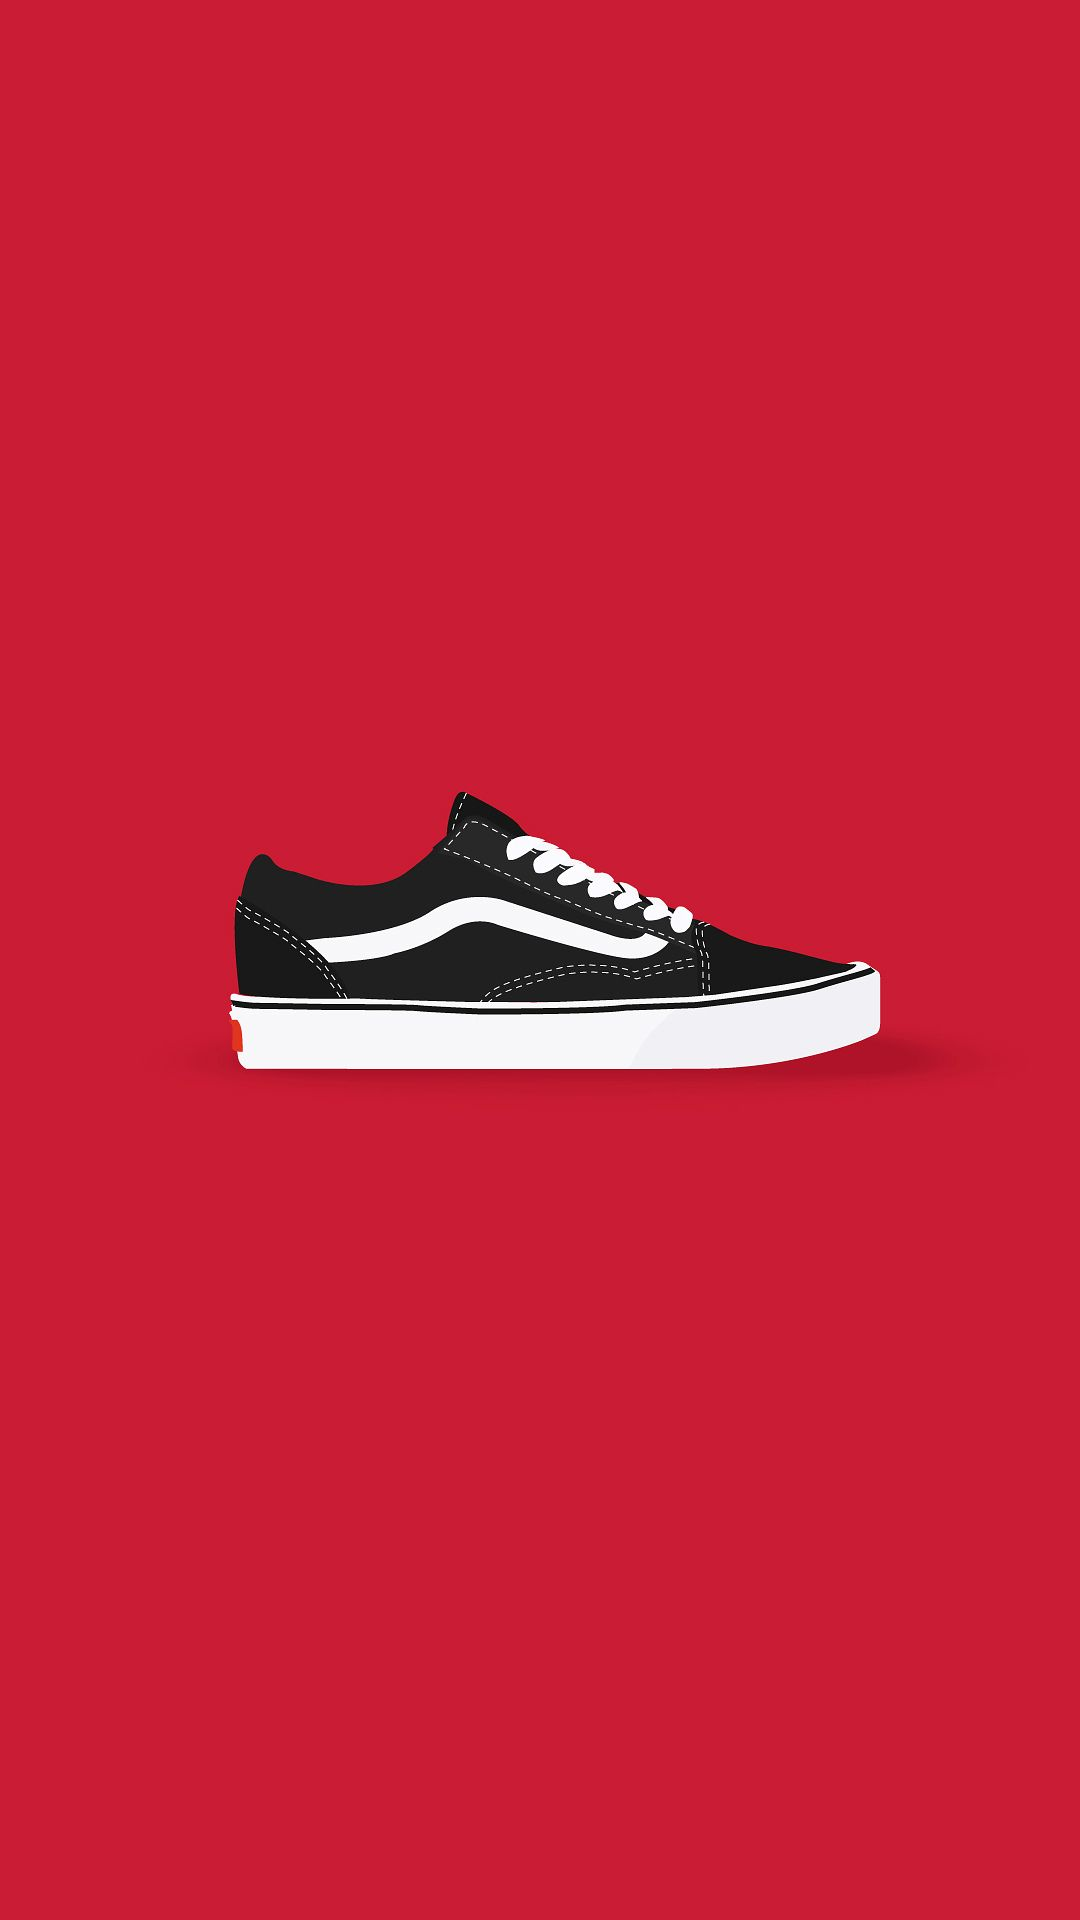 Old Adobe In Vans Skool IllustratorHintergrundbilder 34j5ALRq